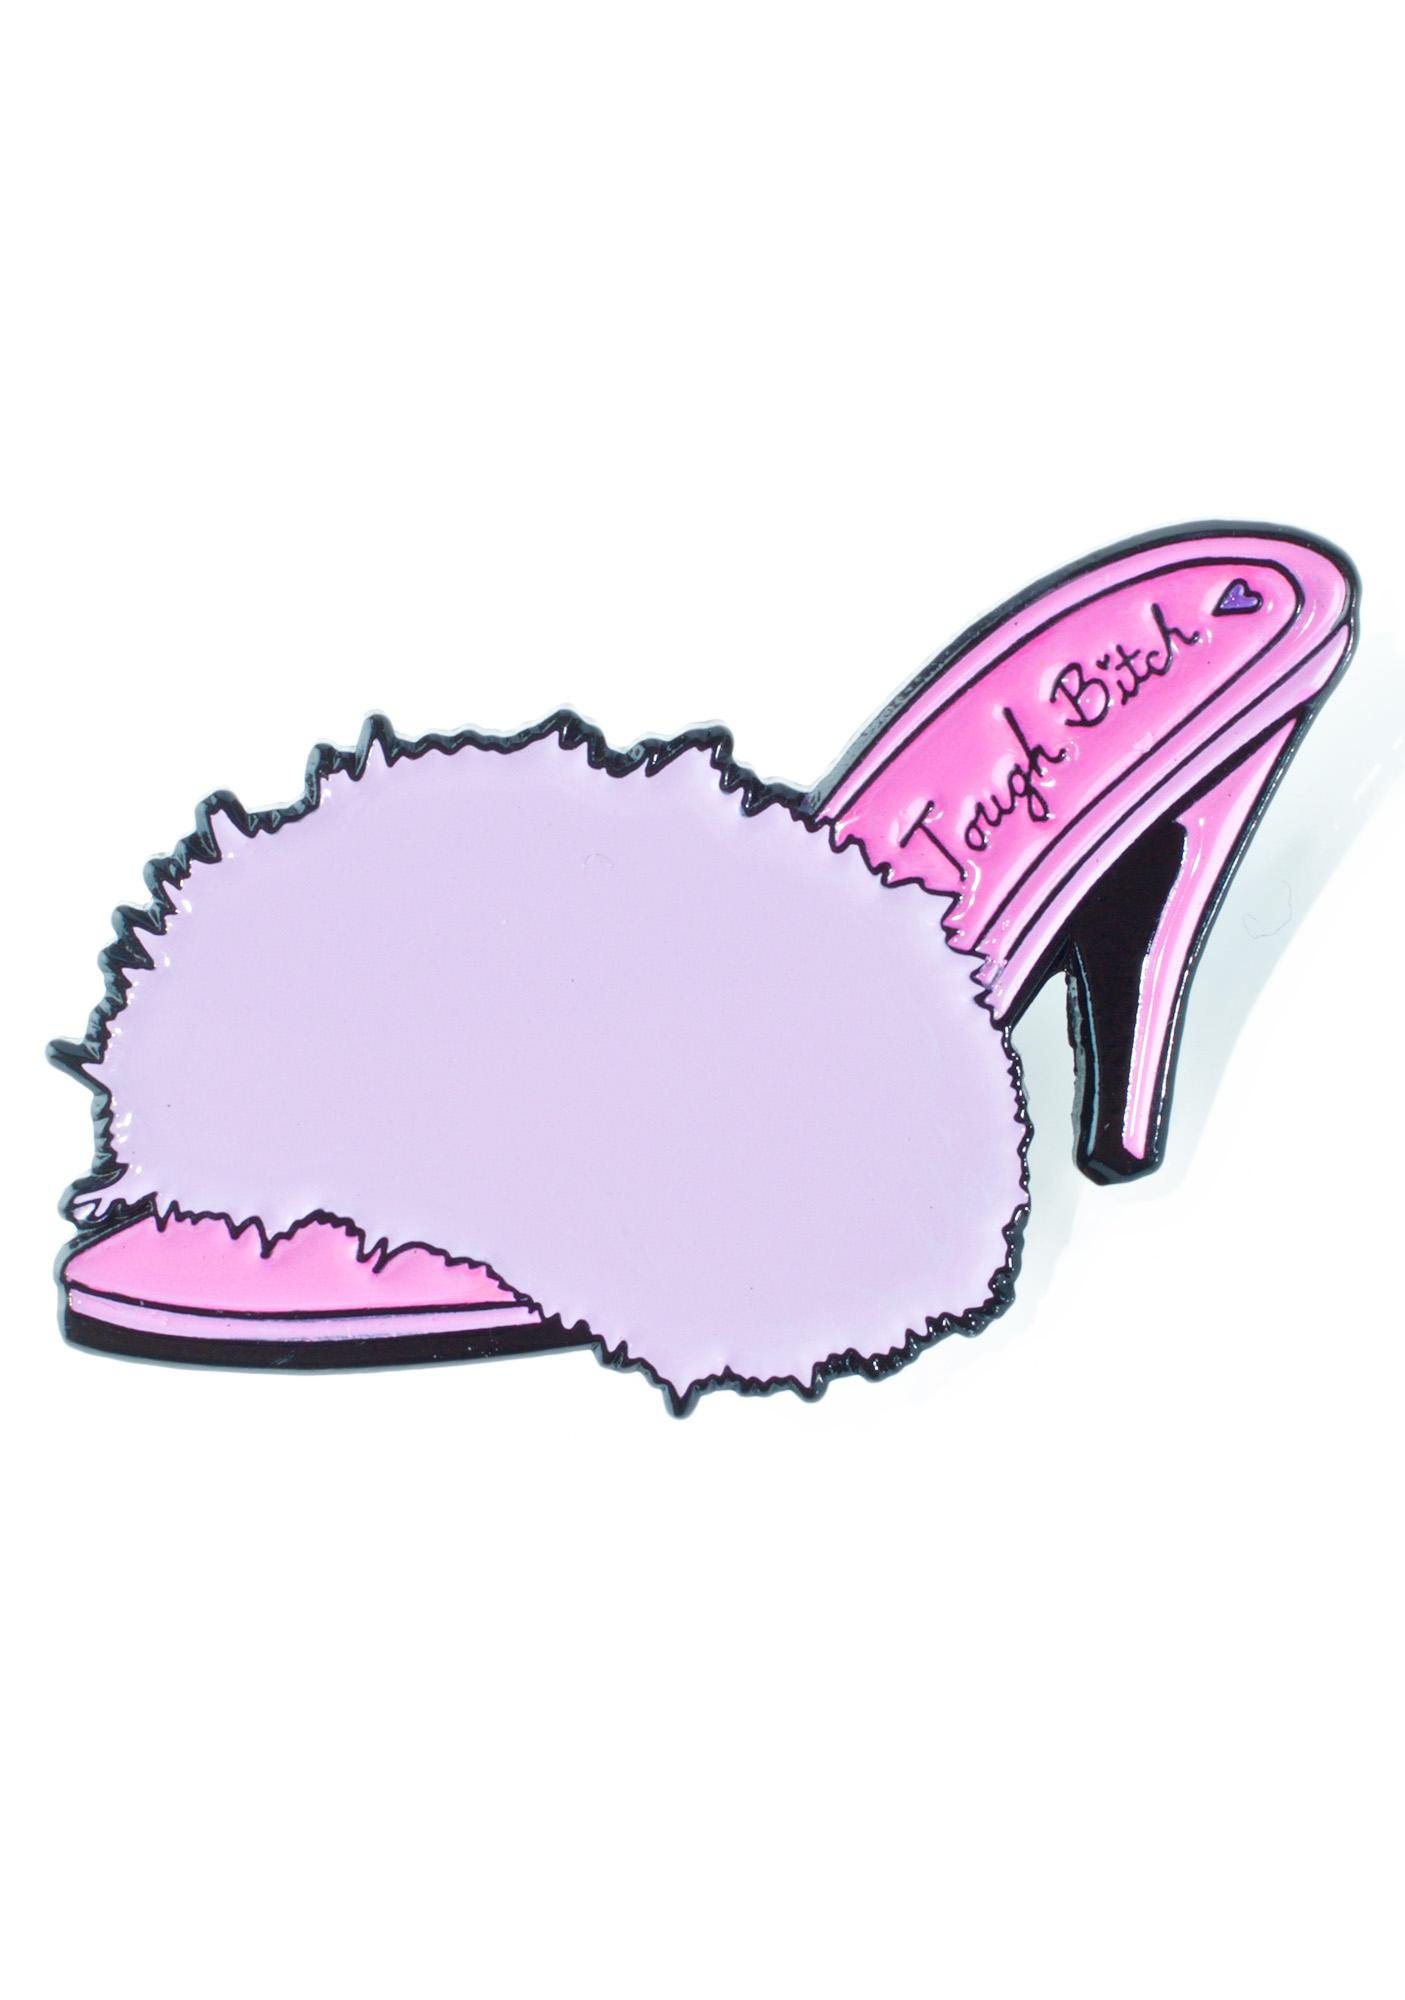 Creepy Gals Fuzzy Heels Pin